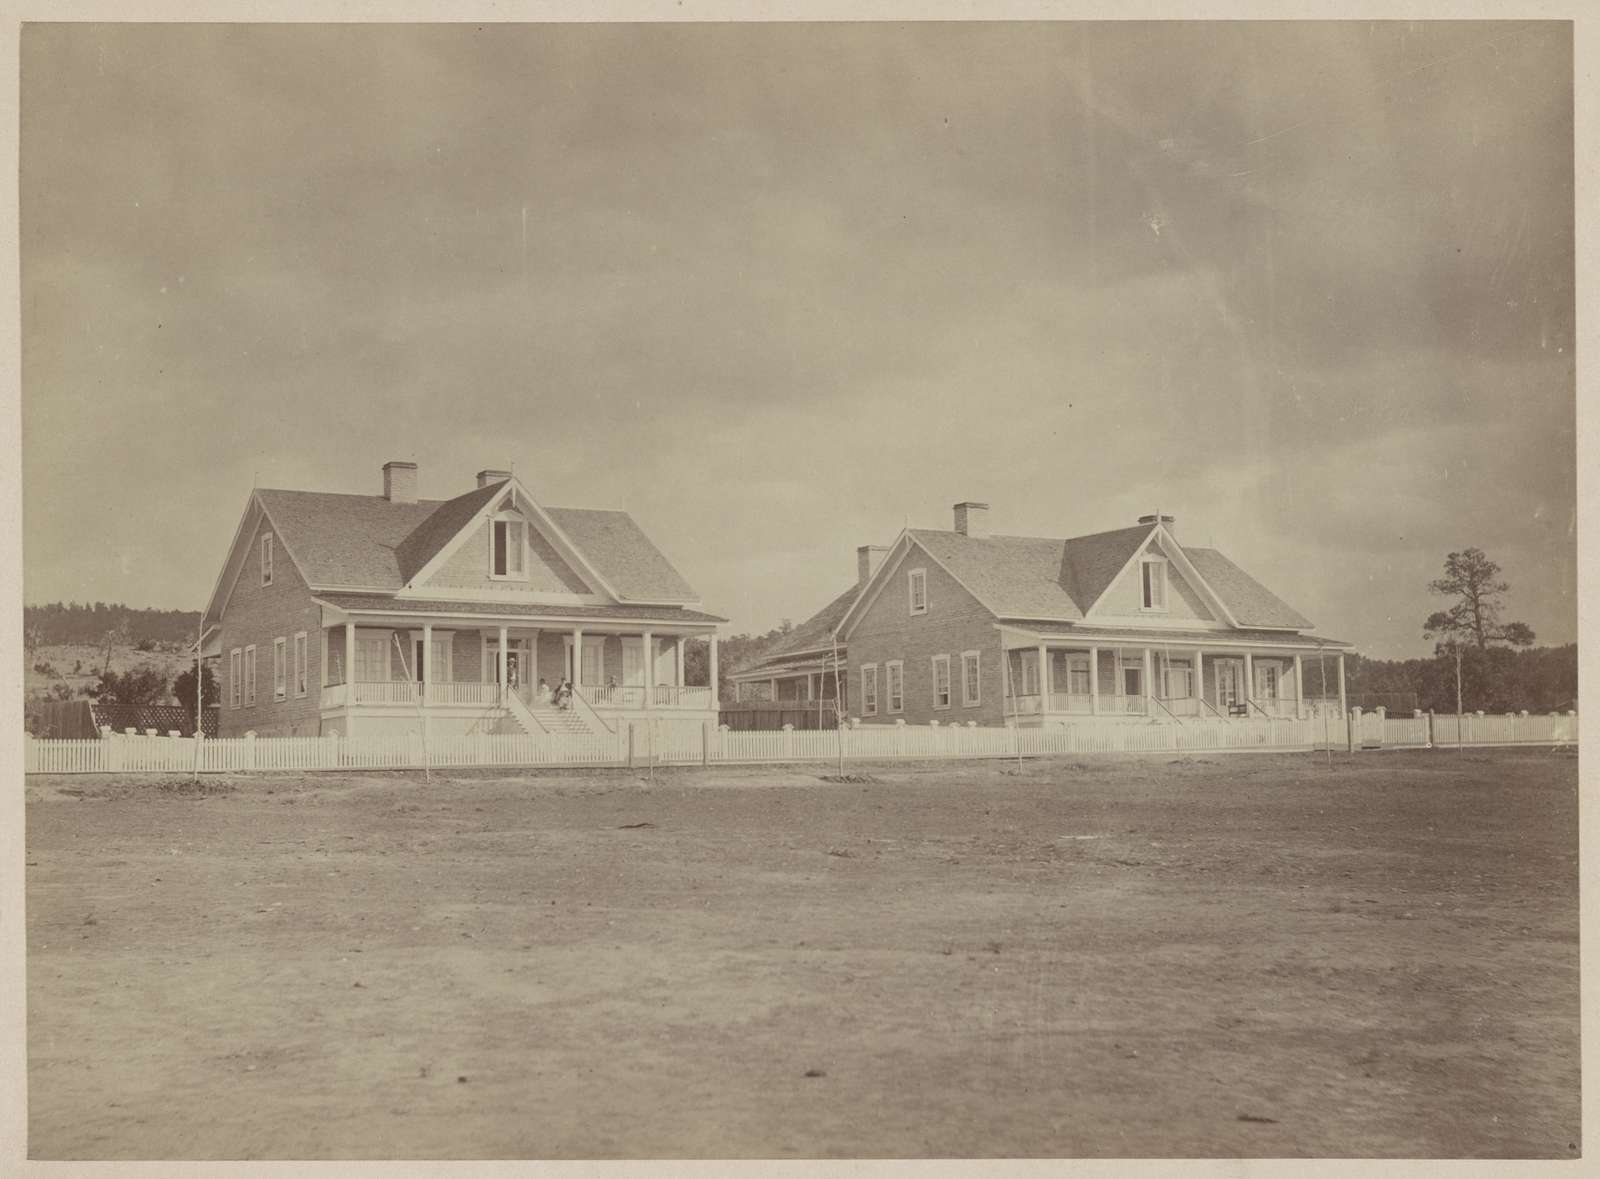 Officers' quarters, Fort Wingate, New Mexico, 1873 / T. H. O'Sullivan, photographer.